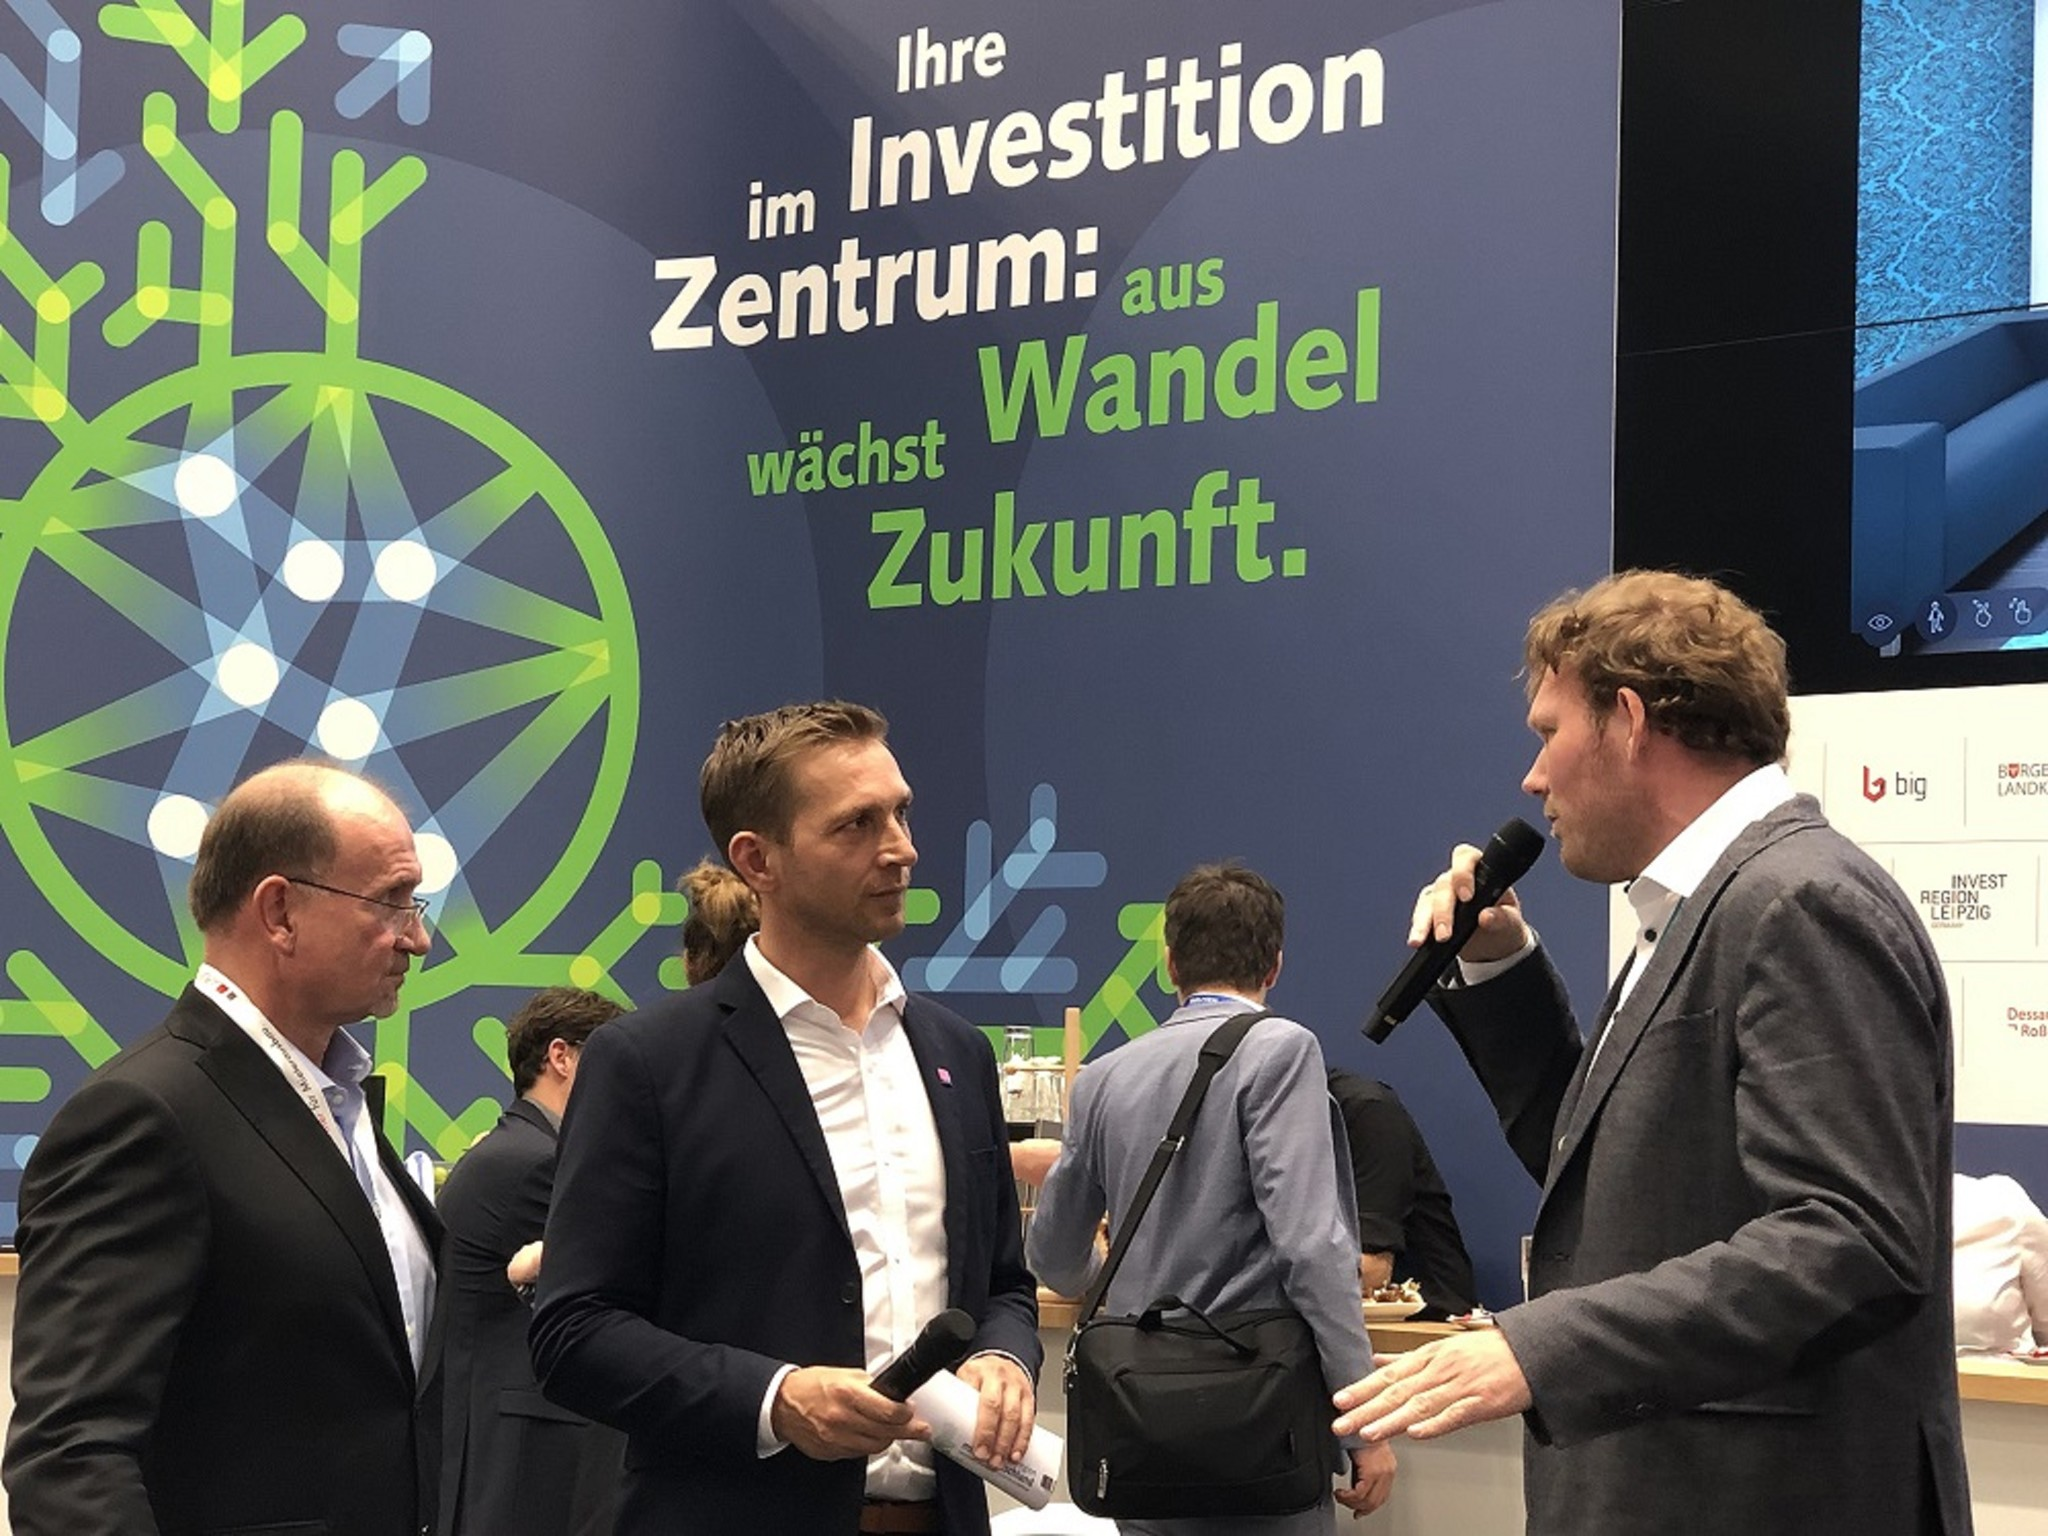 panel discussion on the topic of digitization of real estate with Hans Elstner at EXPO Real 2019 in Munich